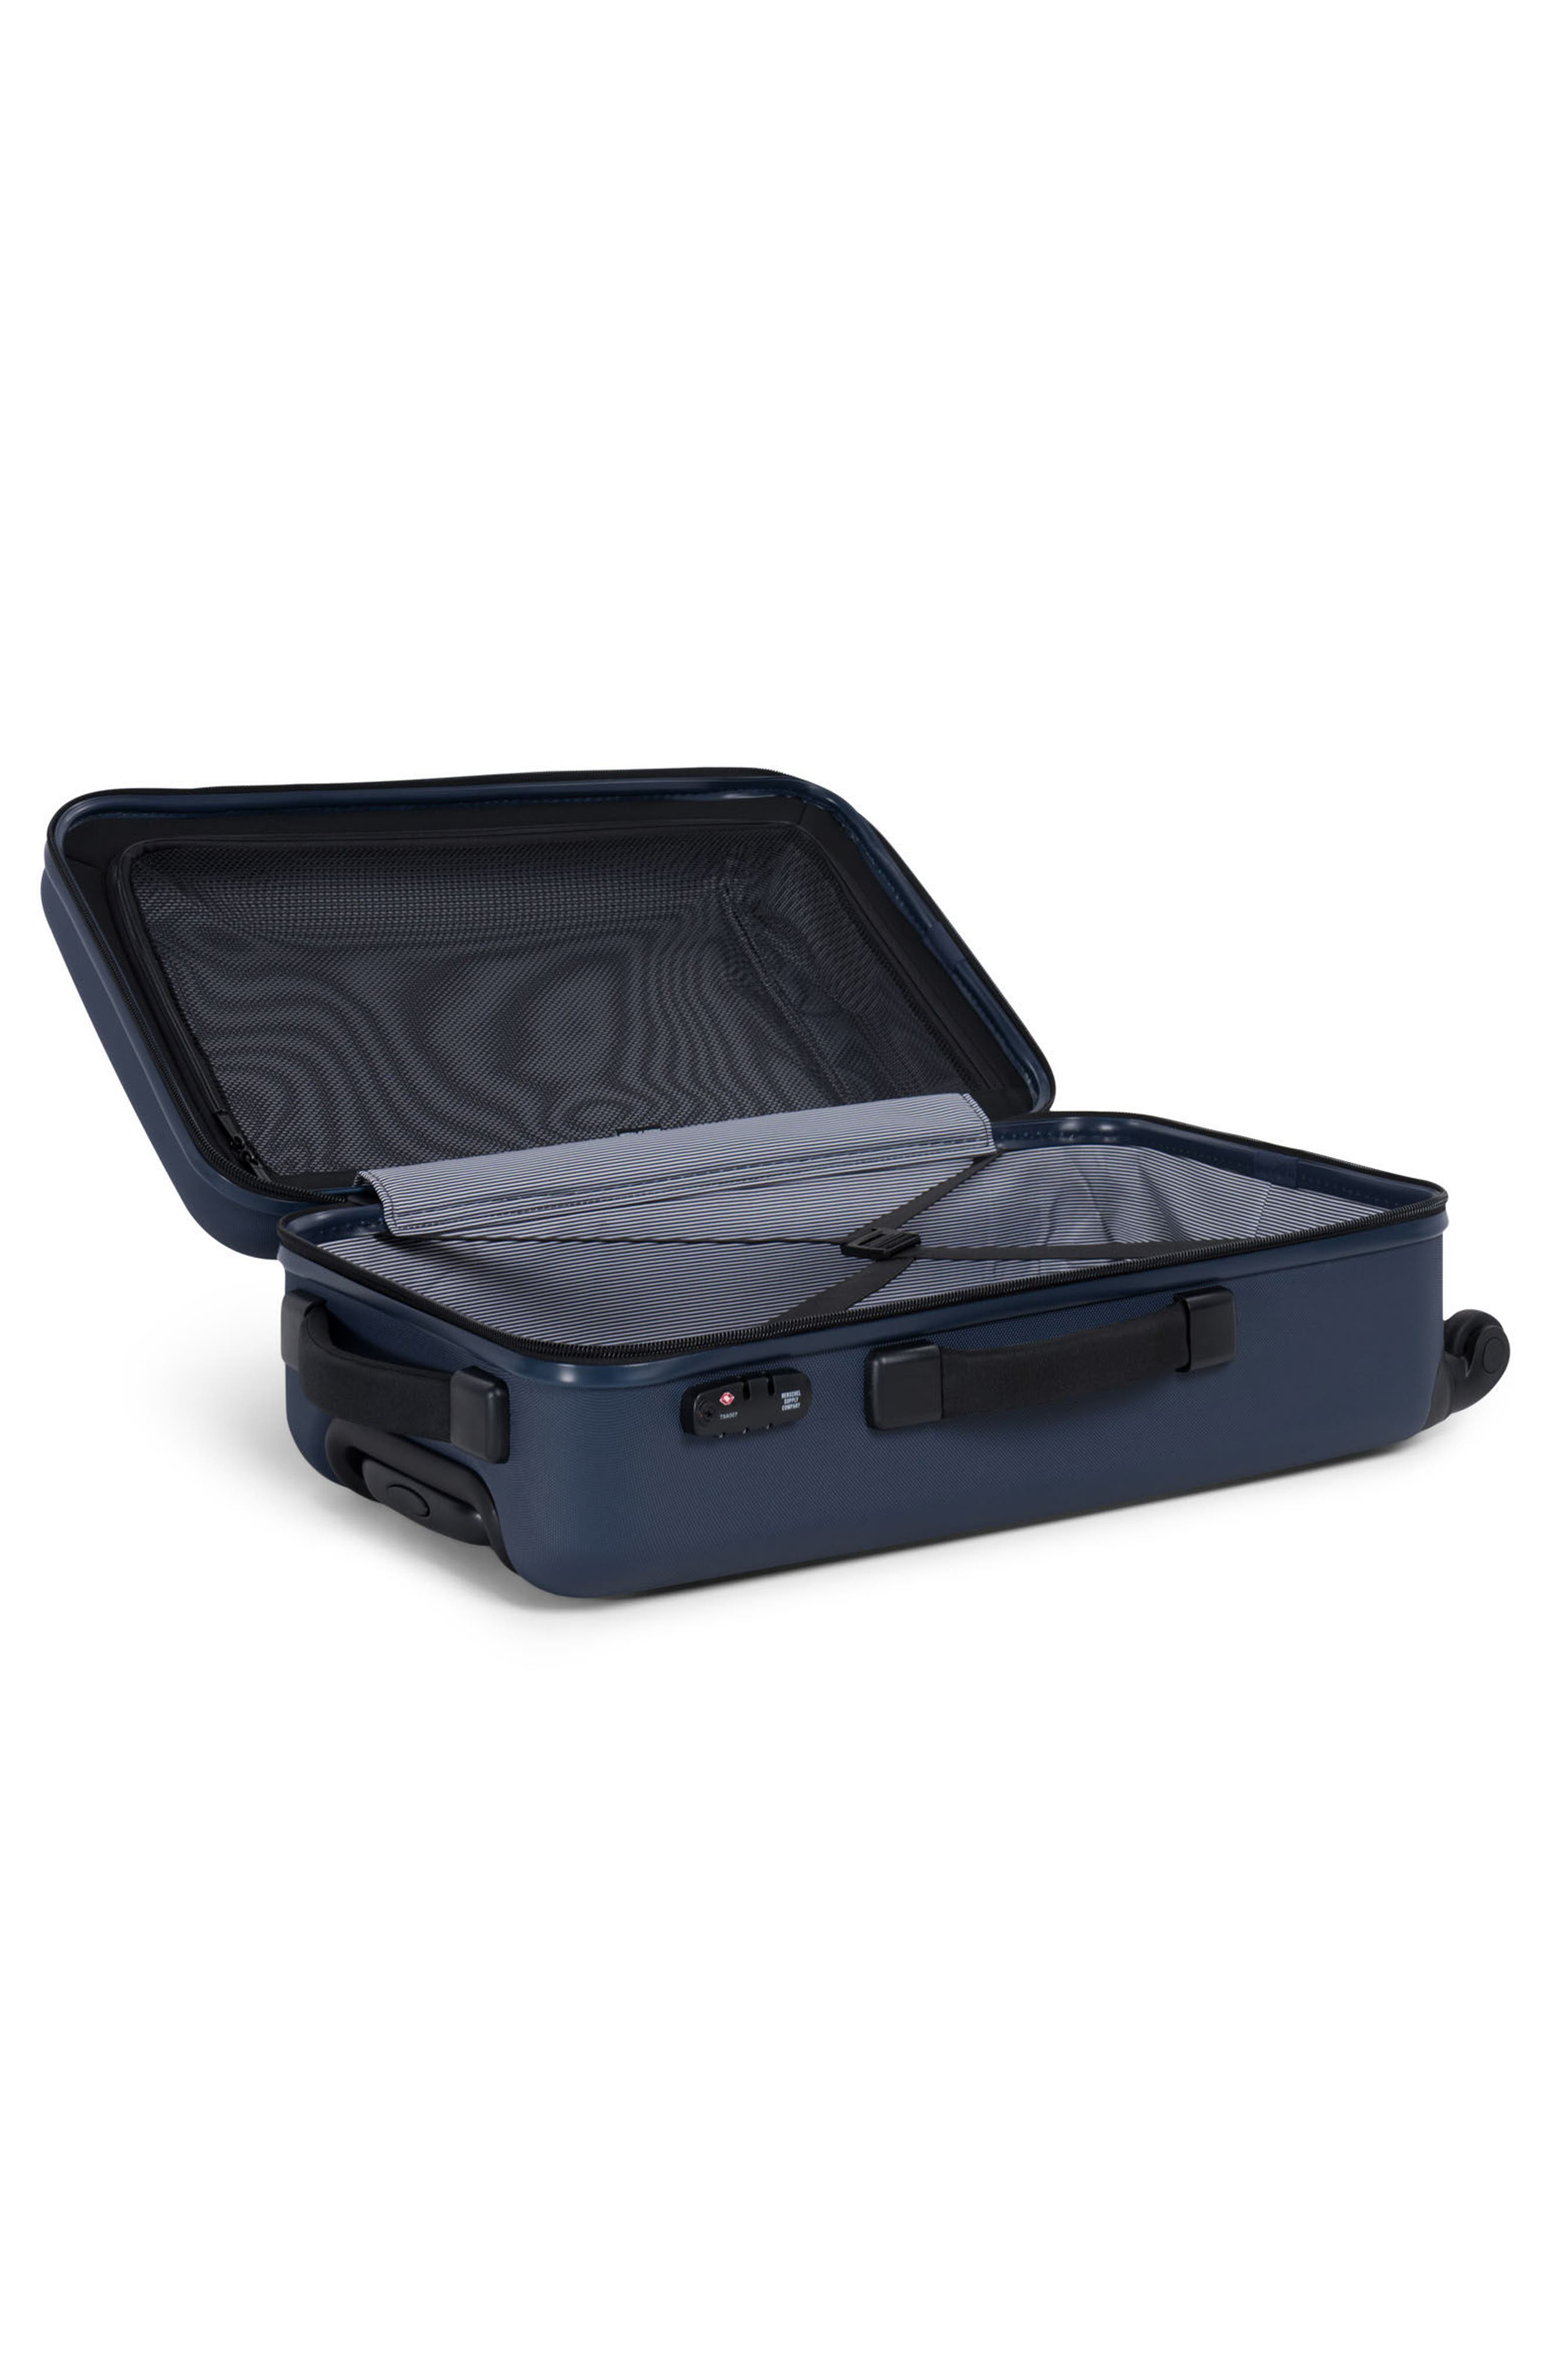 Trade Medium Wheeled Packing Case,                             Alternate thumbnail 2, color,                             Navy